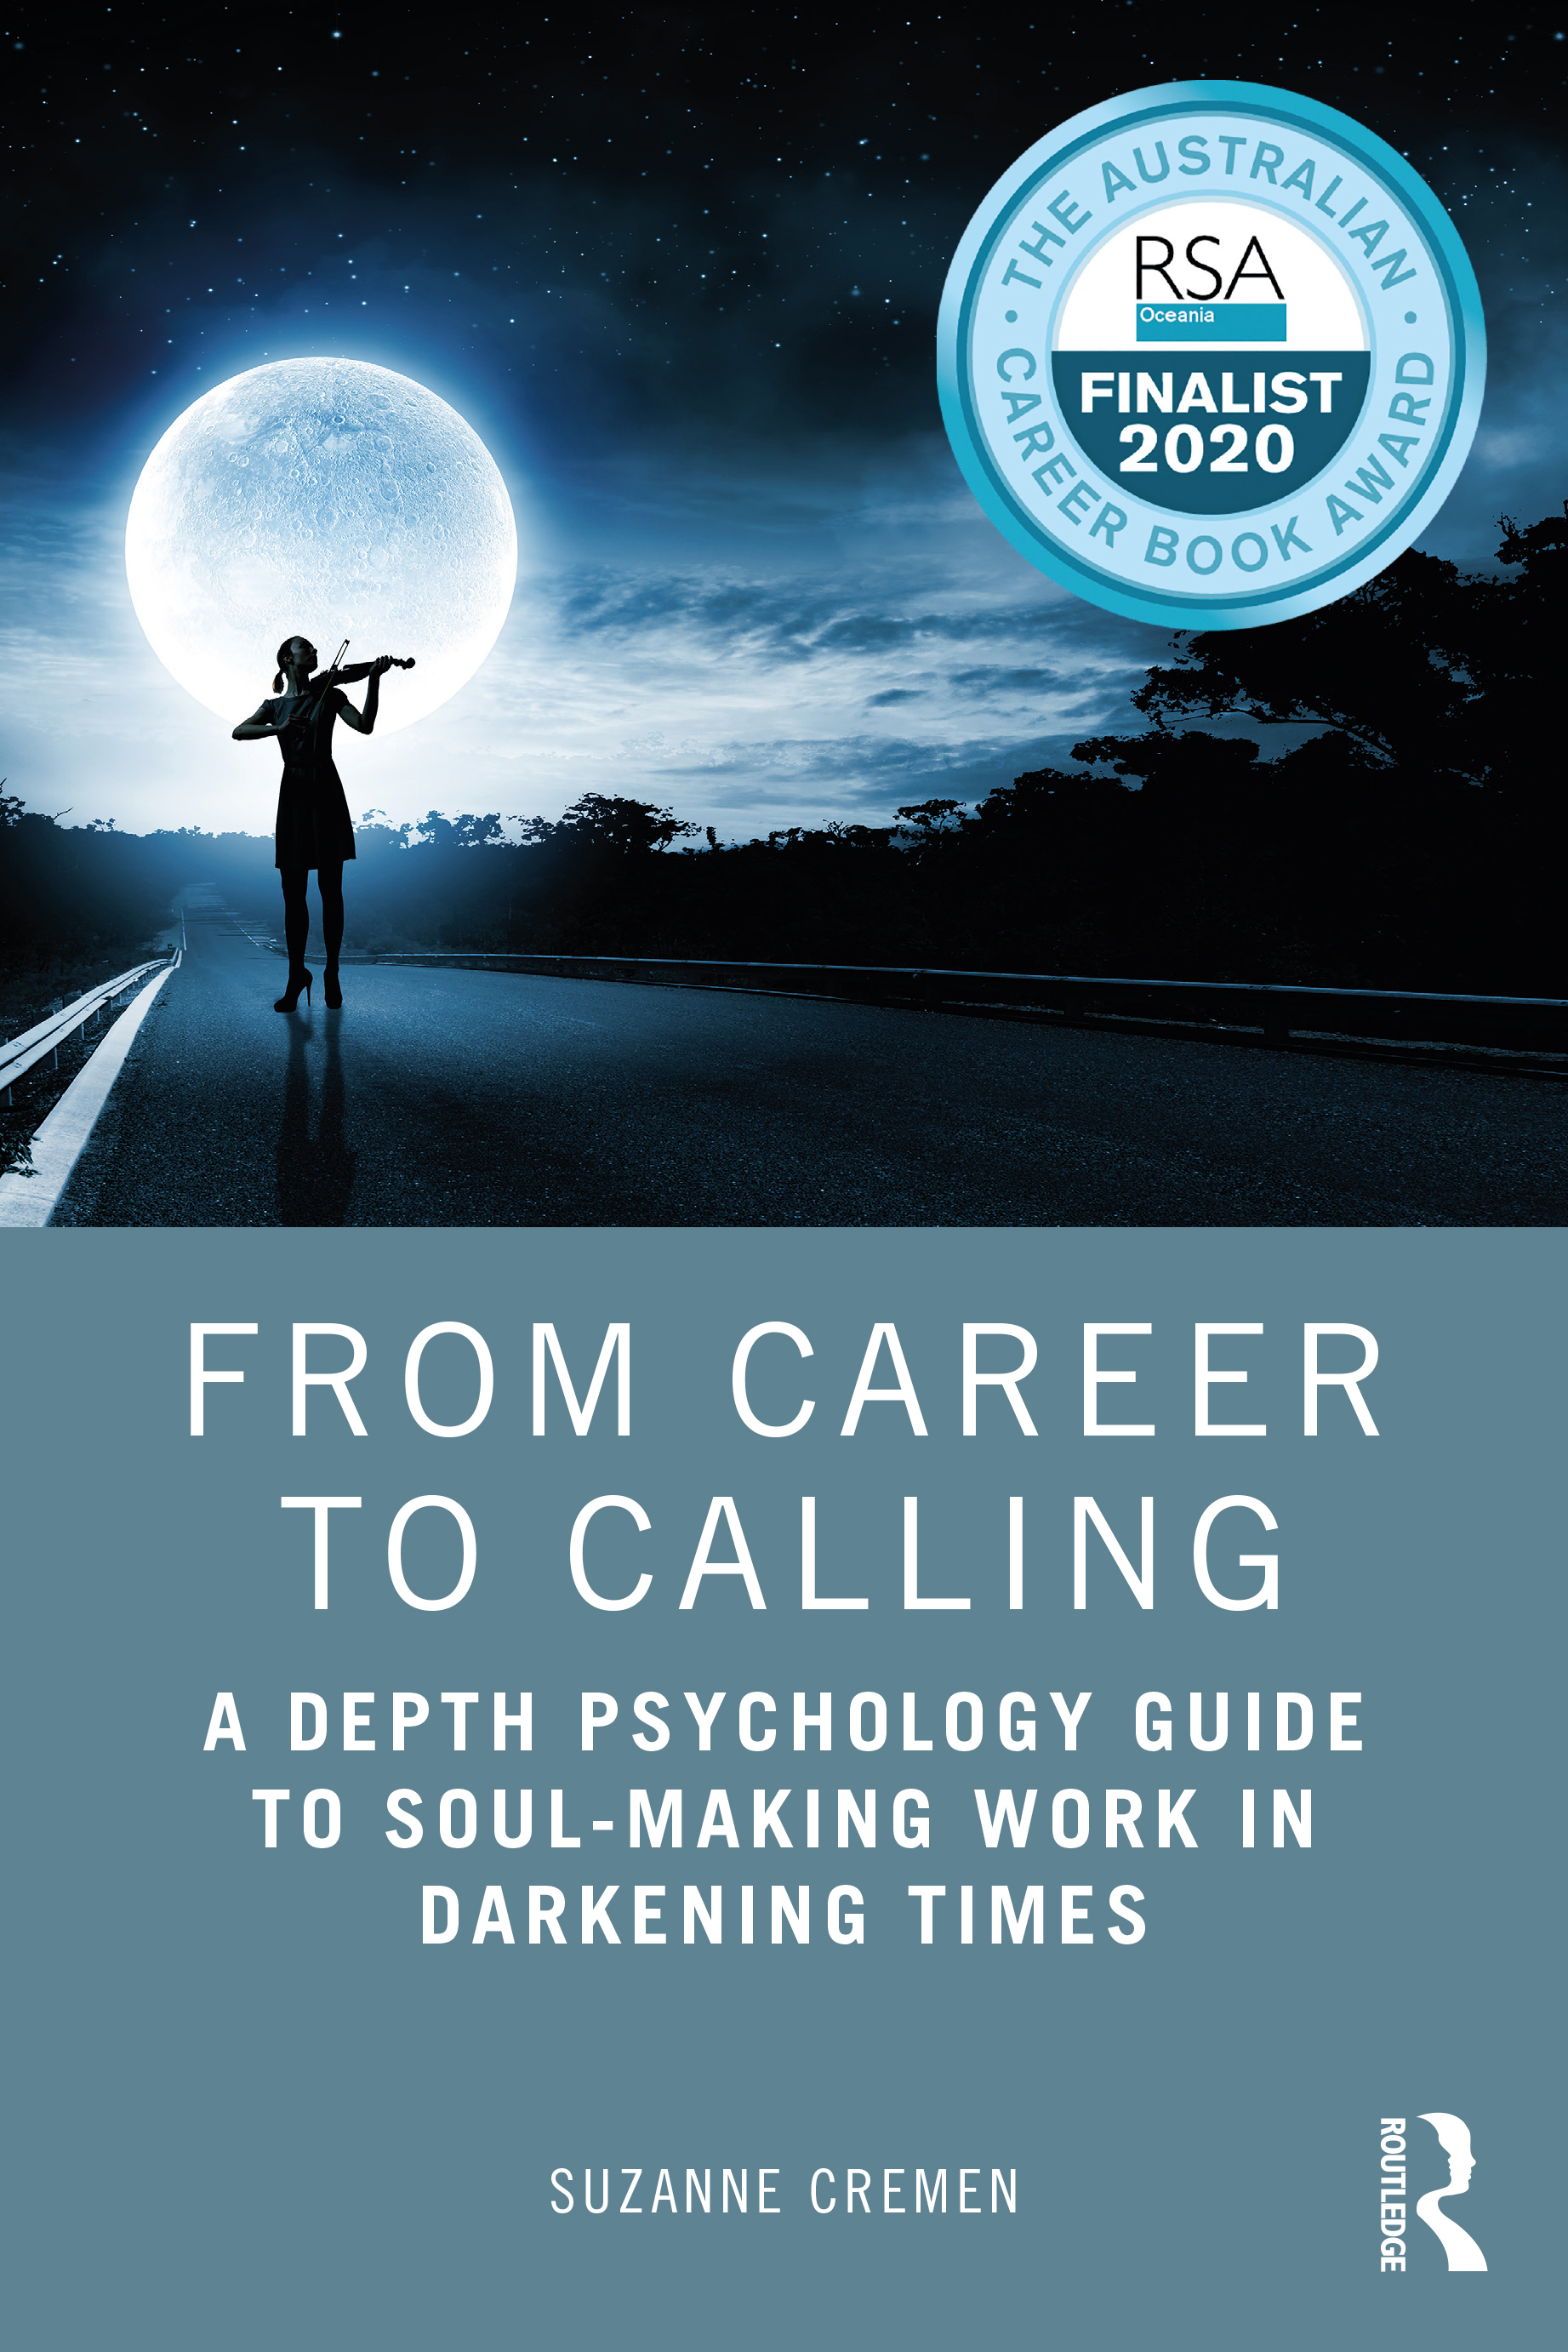 From Career to Calling: A Depth Psychology Guide to Soul-Making Work in Darkening Times book cover